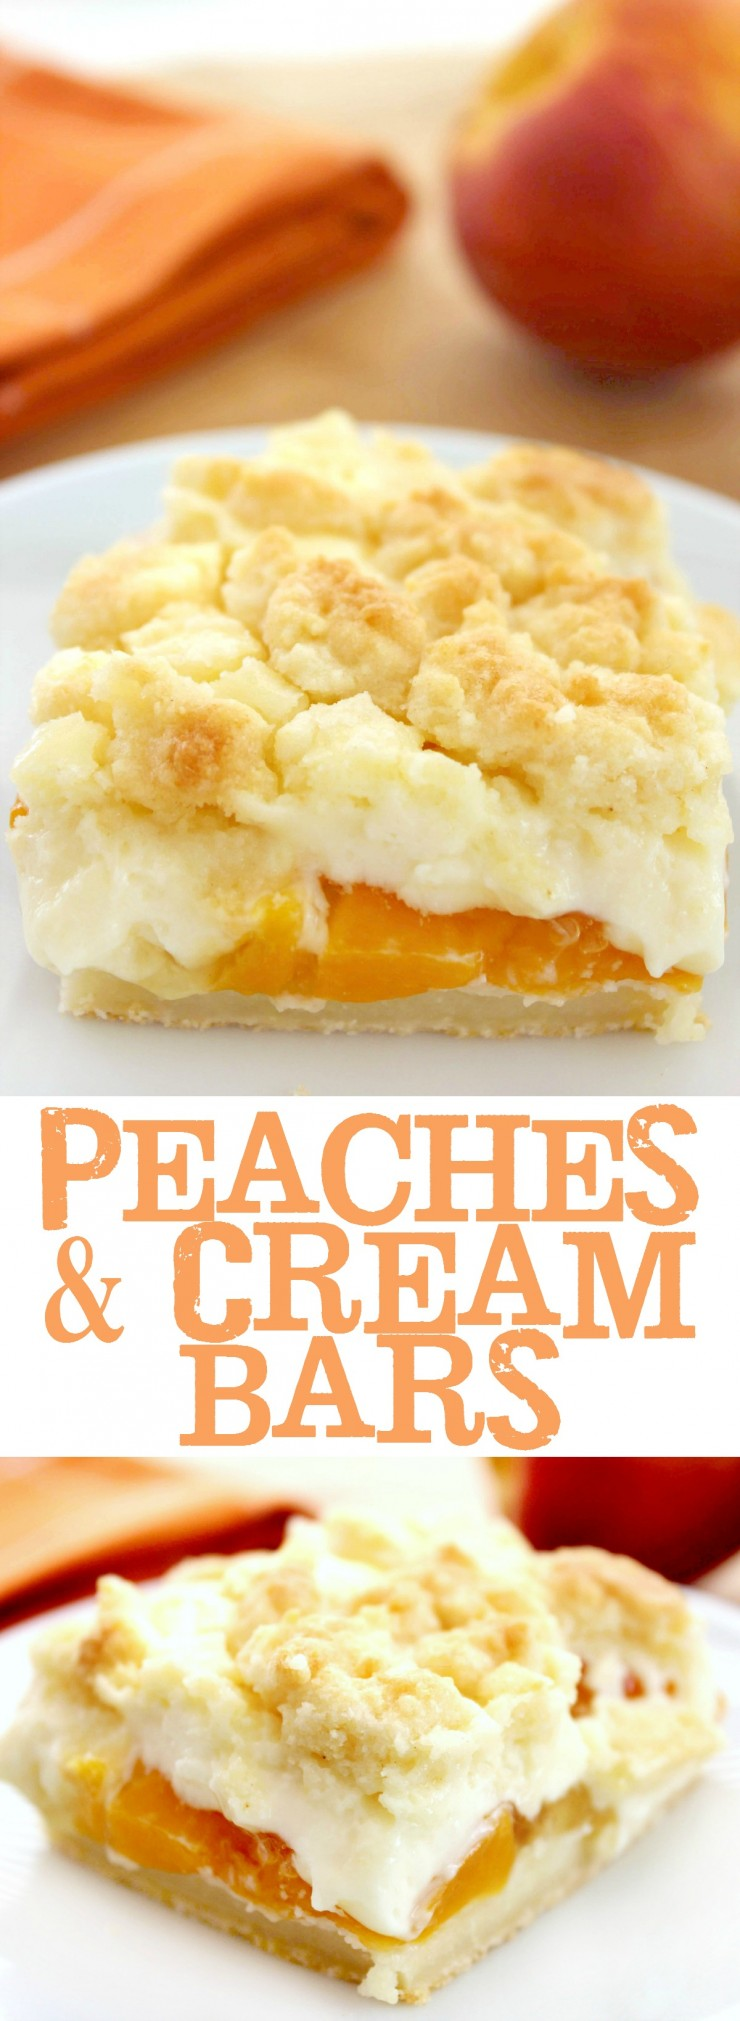 These Peaches and Cream Bars are a delectable summer dessert This recipe is so easy and full of flavour!